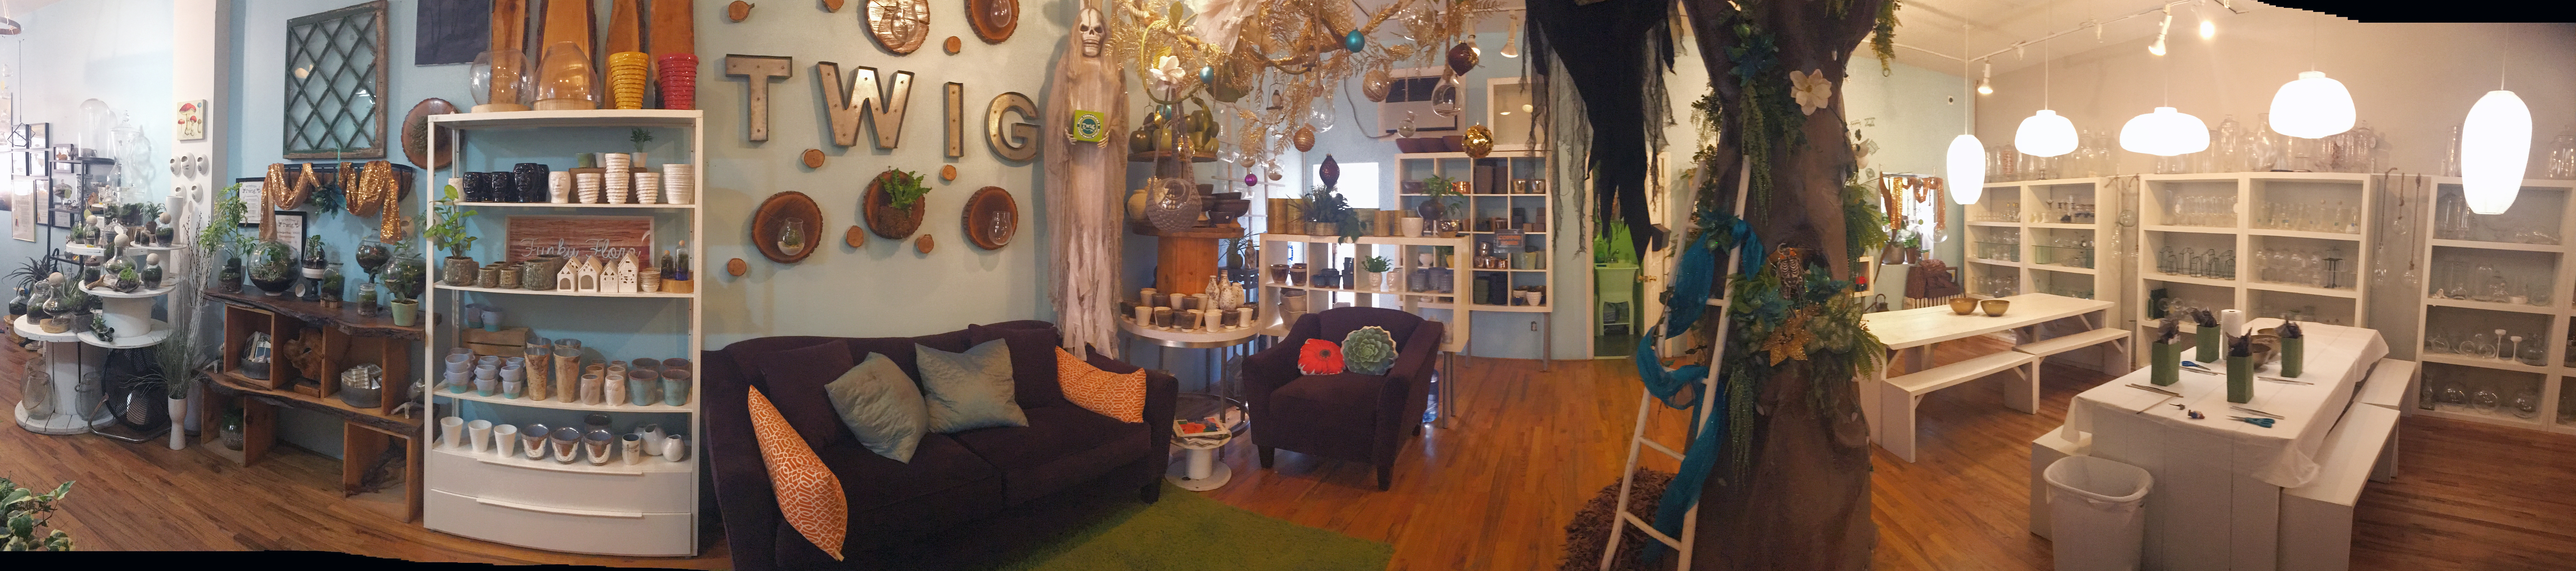 Main Space event space at Twig Terrariums in New York City, NYC, NY/NJ Area